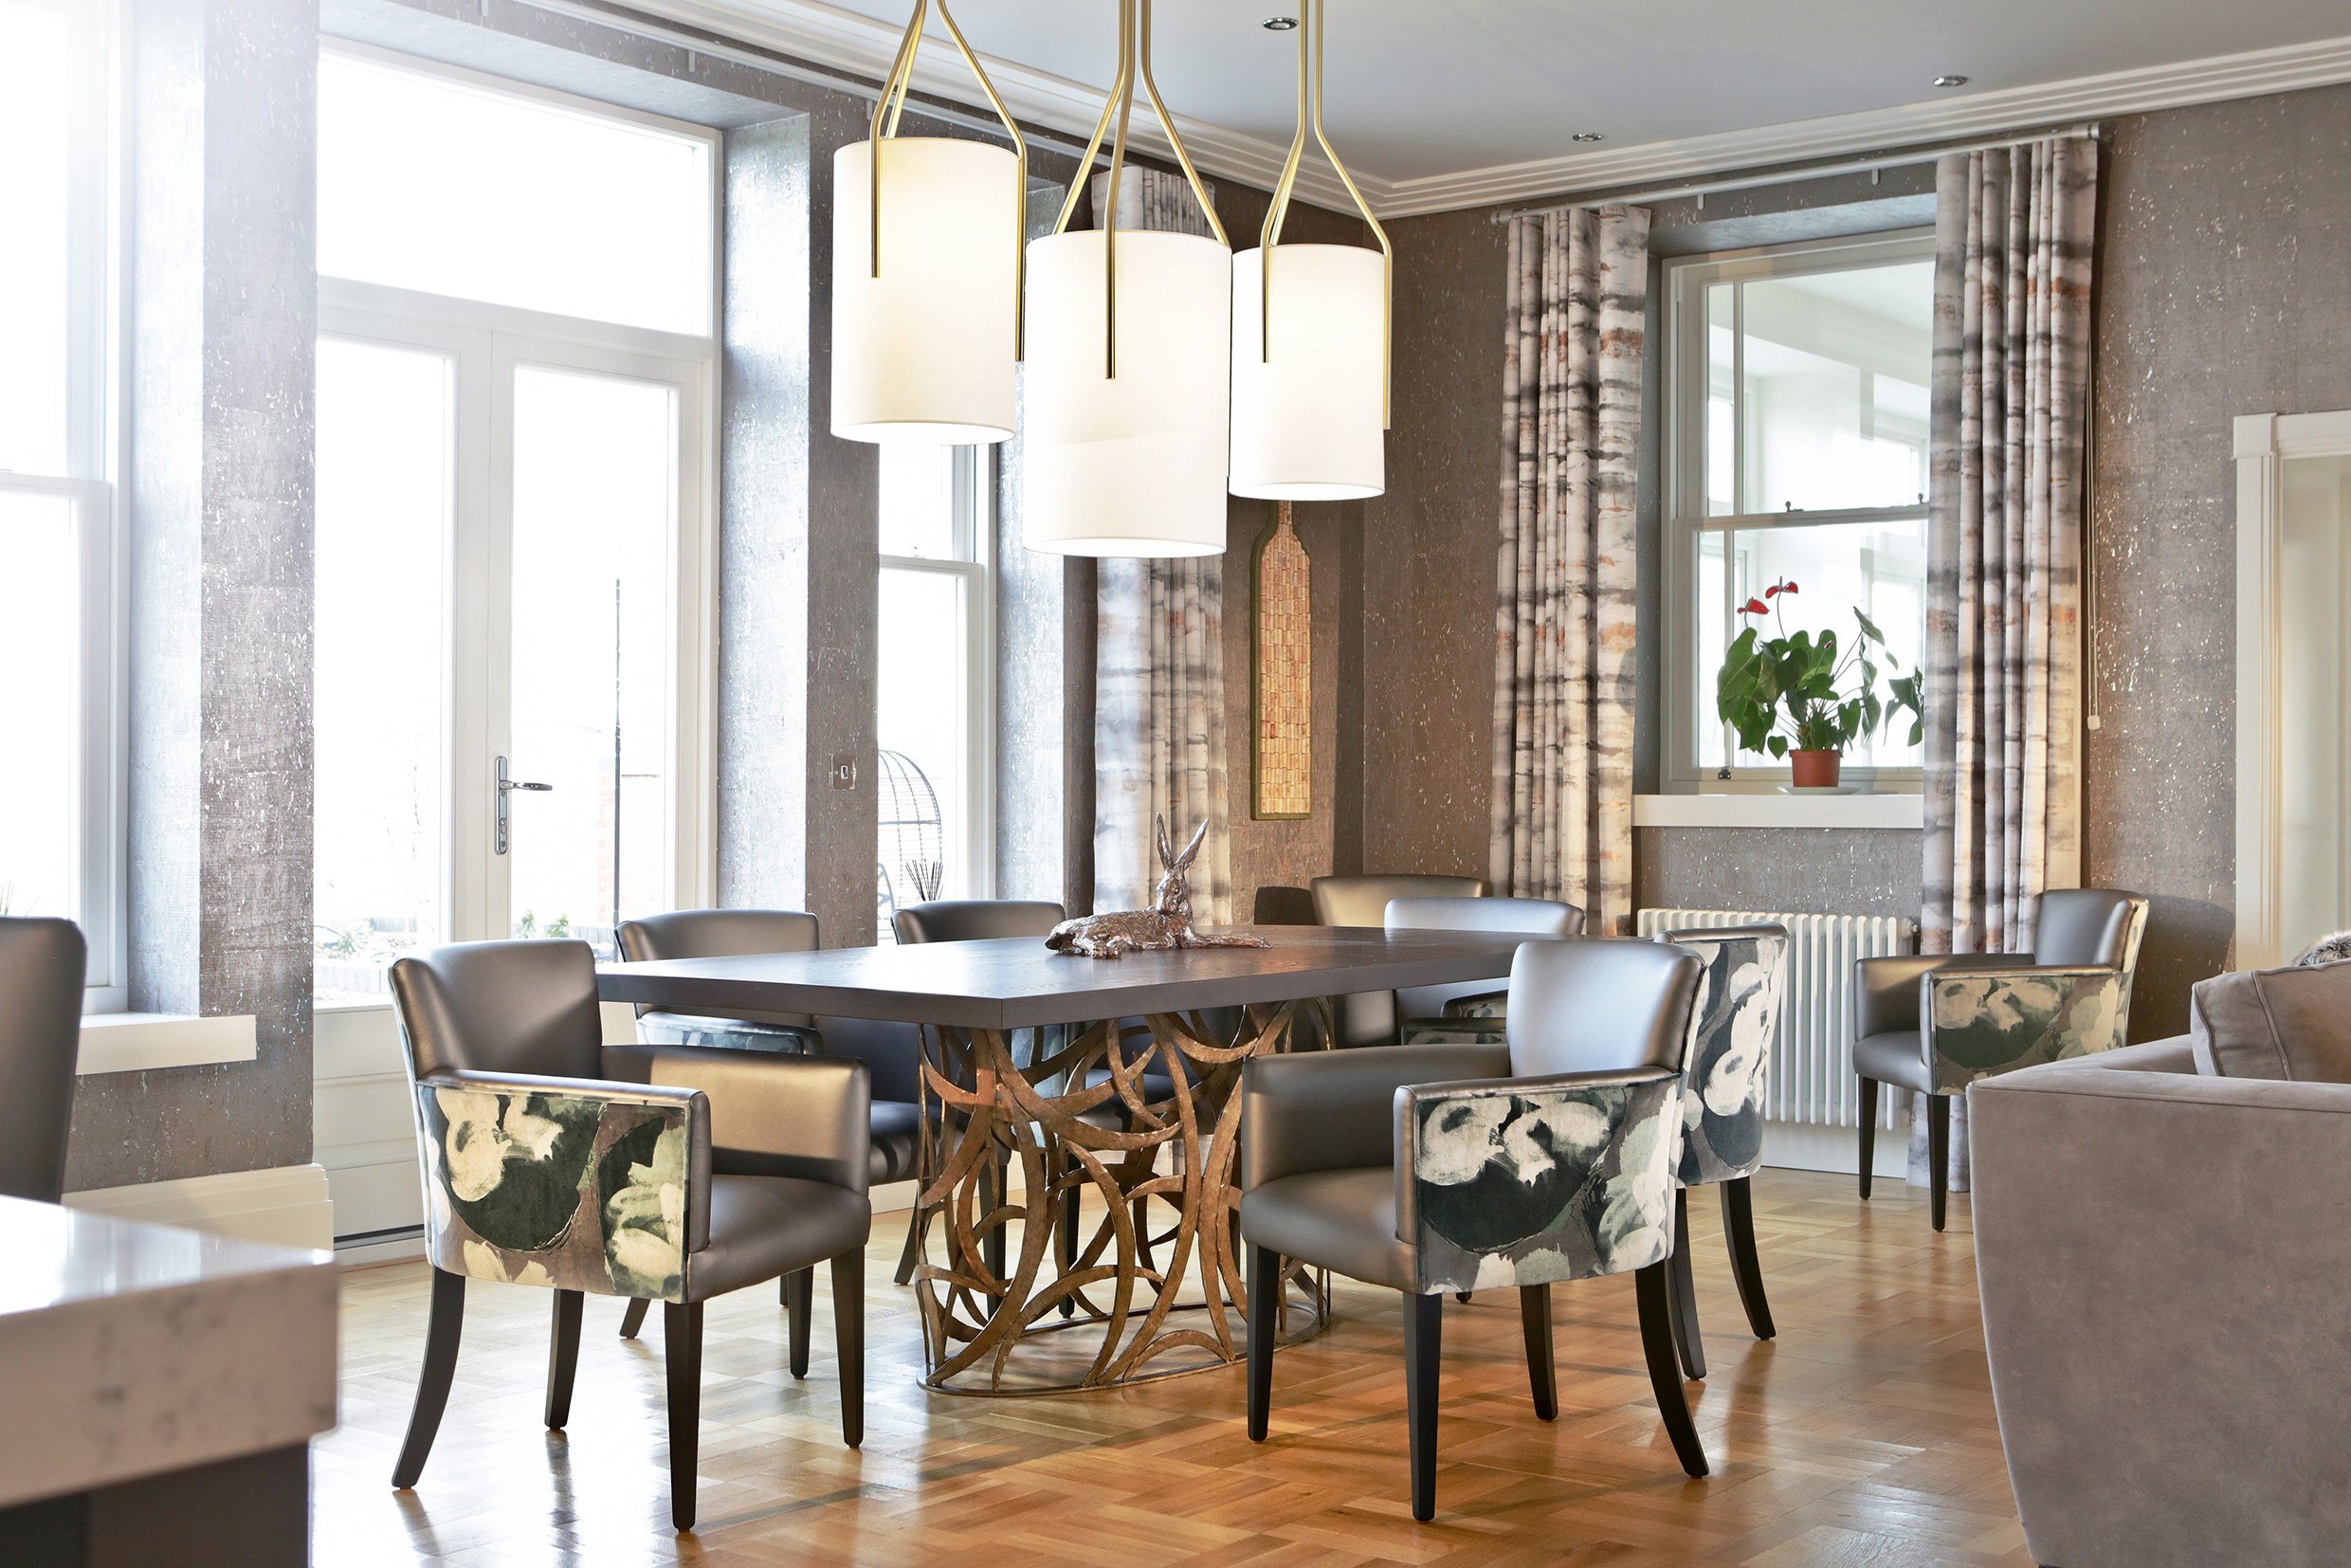 Peter Staunton Interior Design - Flint Hall Dining Area